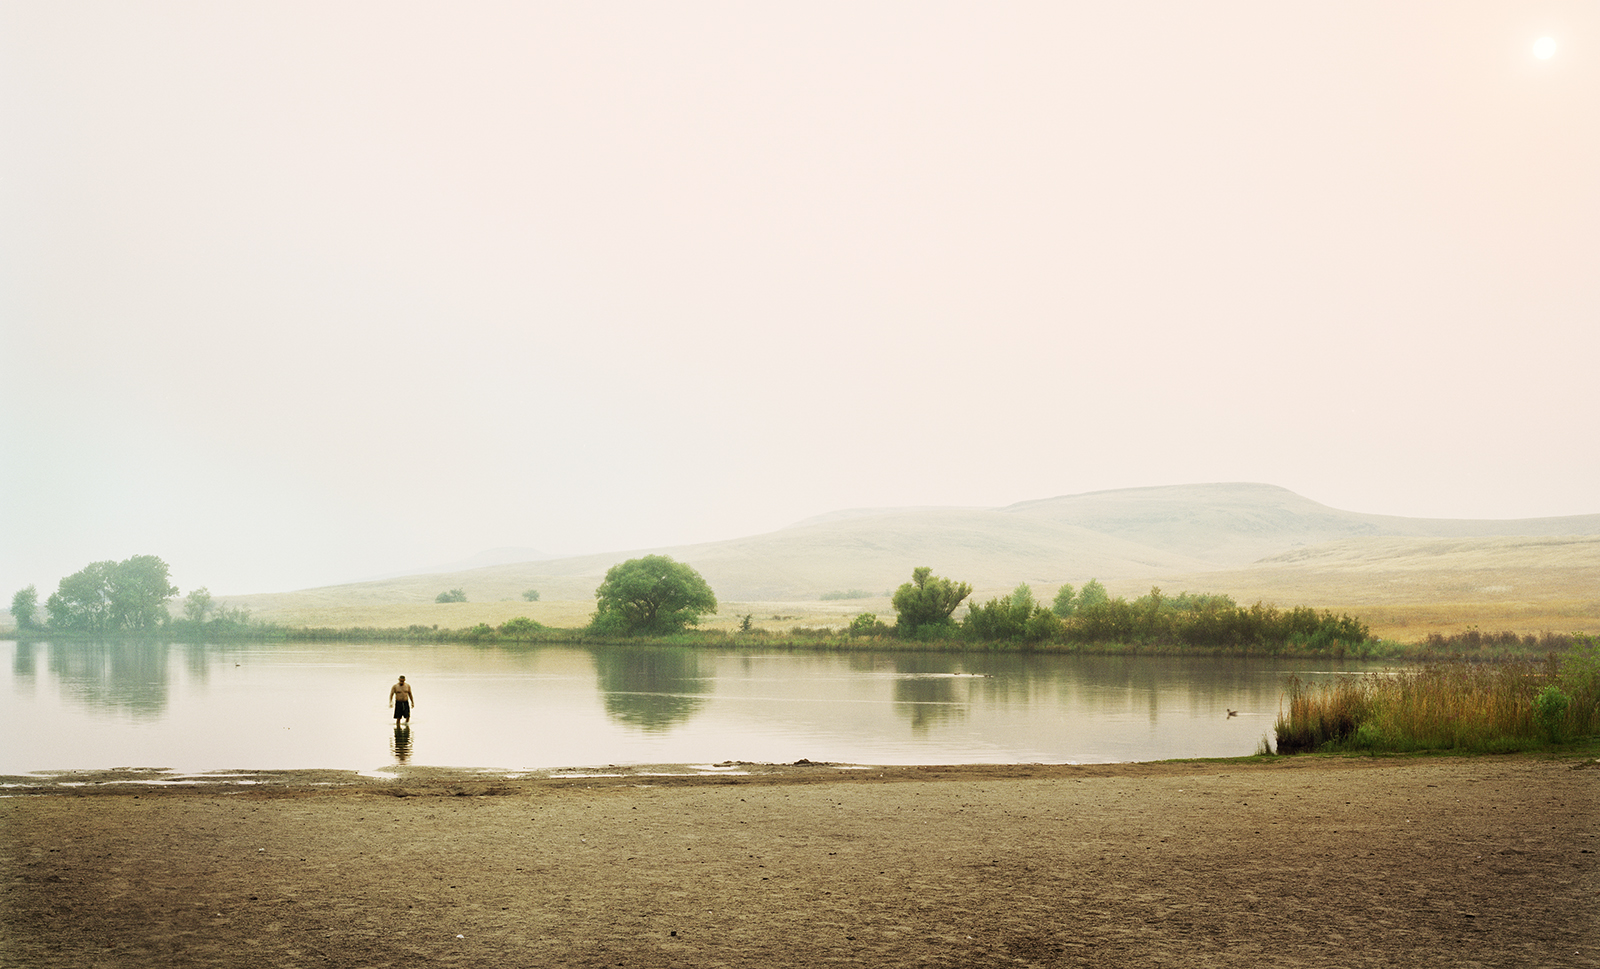 A wide shot of a lake with a man standing in the water